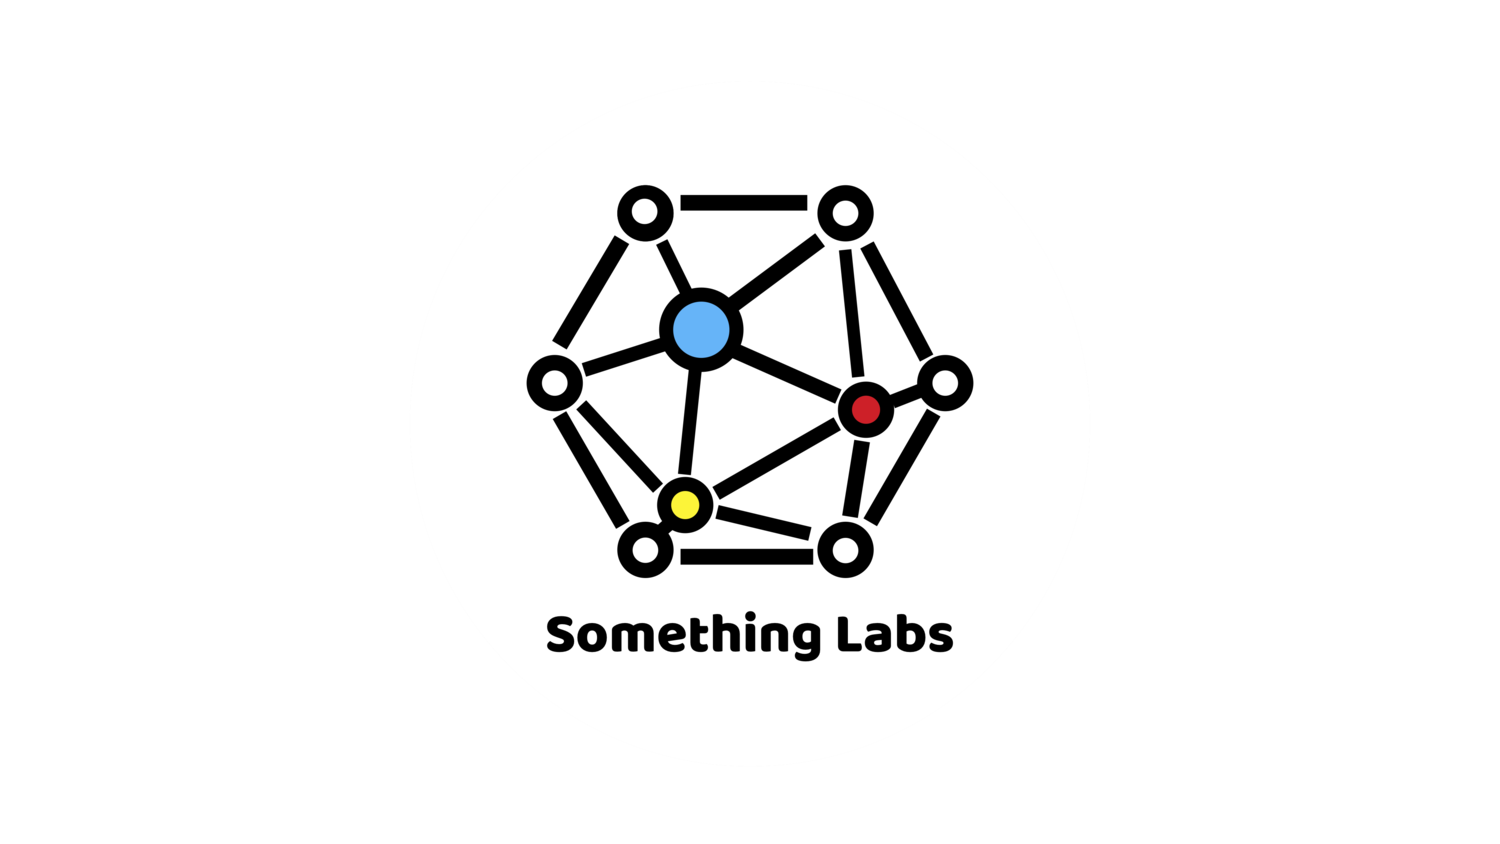 Something Labs logo, Get Us PPE coalition partner